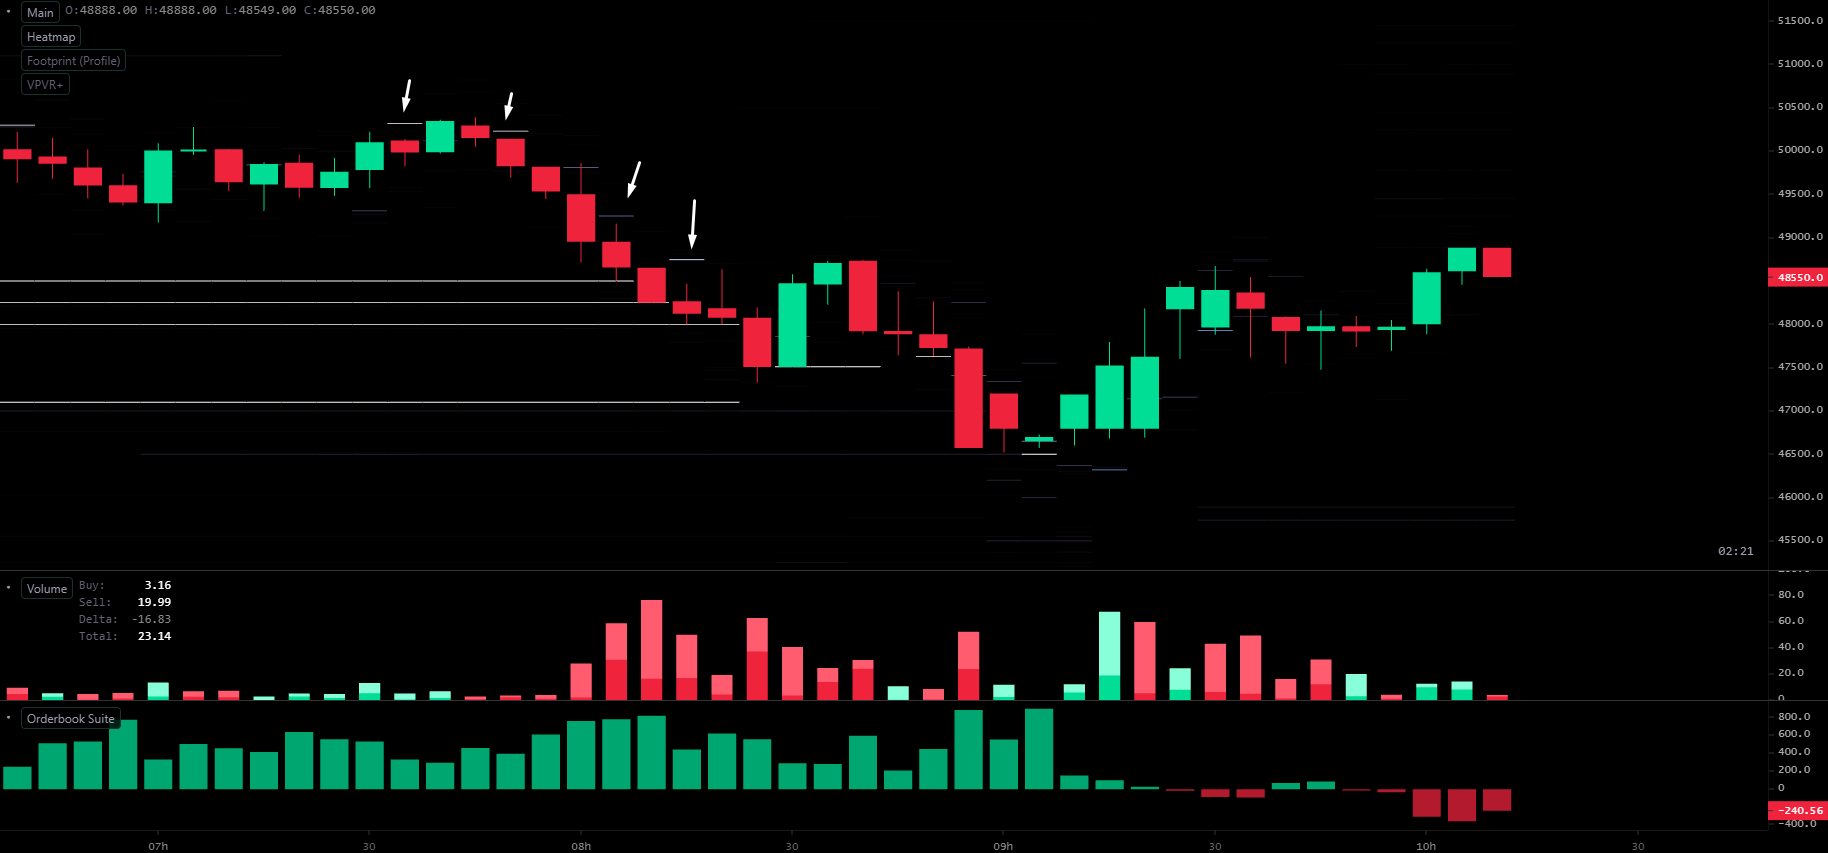 $5.64 billion liquidated in 24 hours as Bitcoin extends losses — Is a relief rally near?